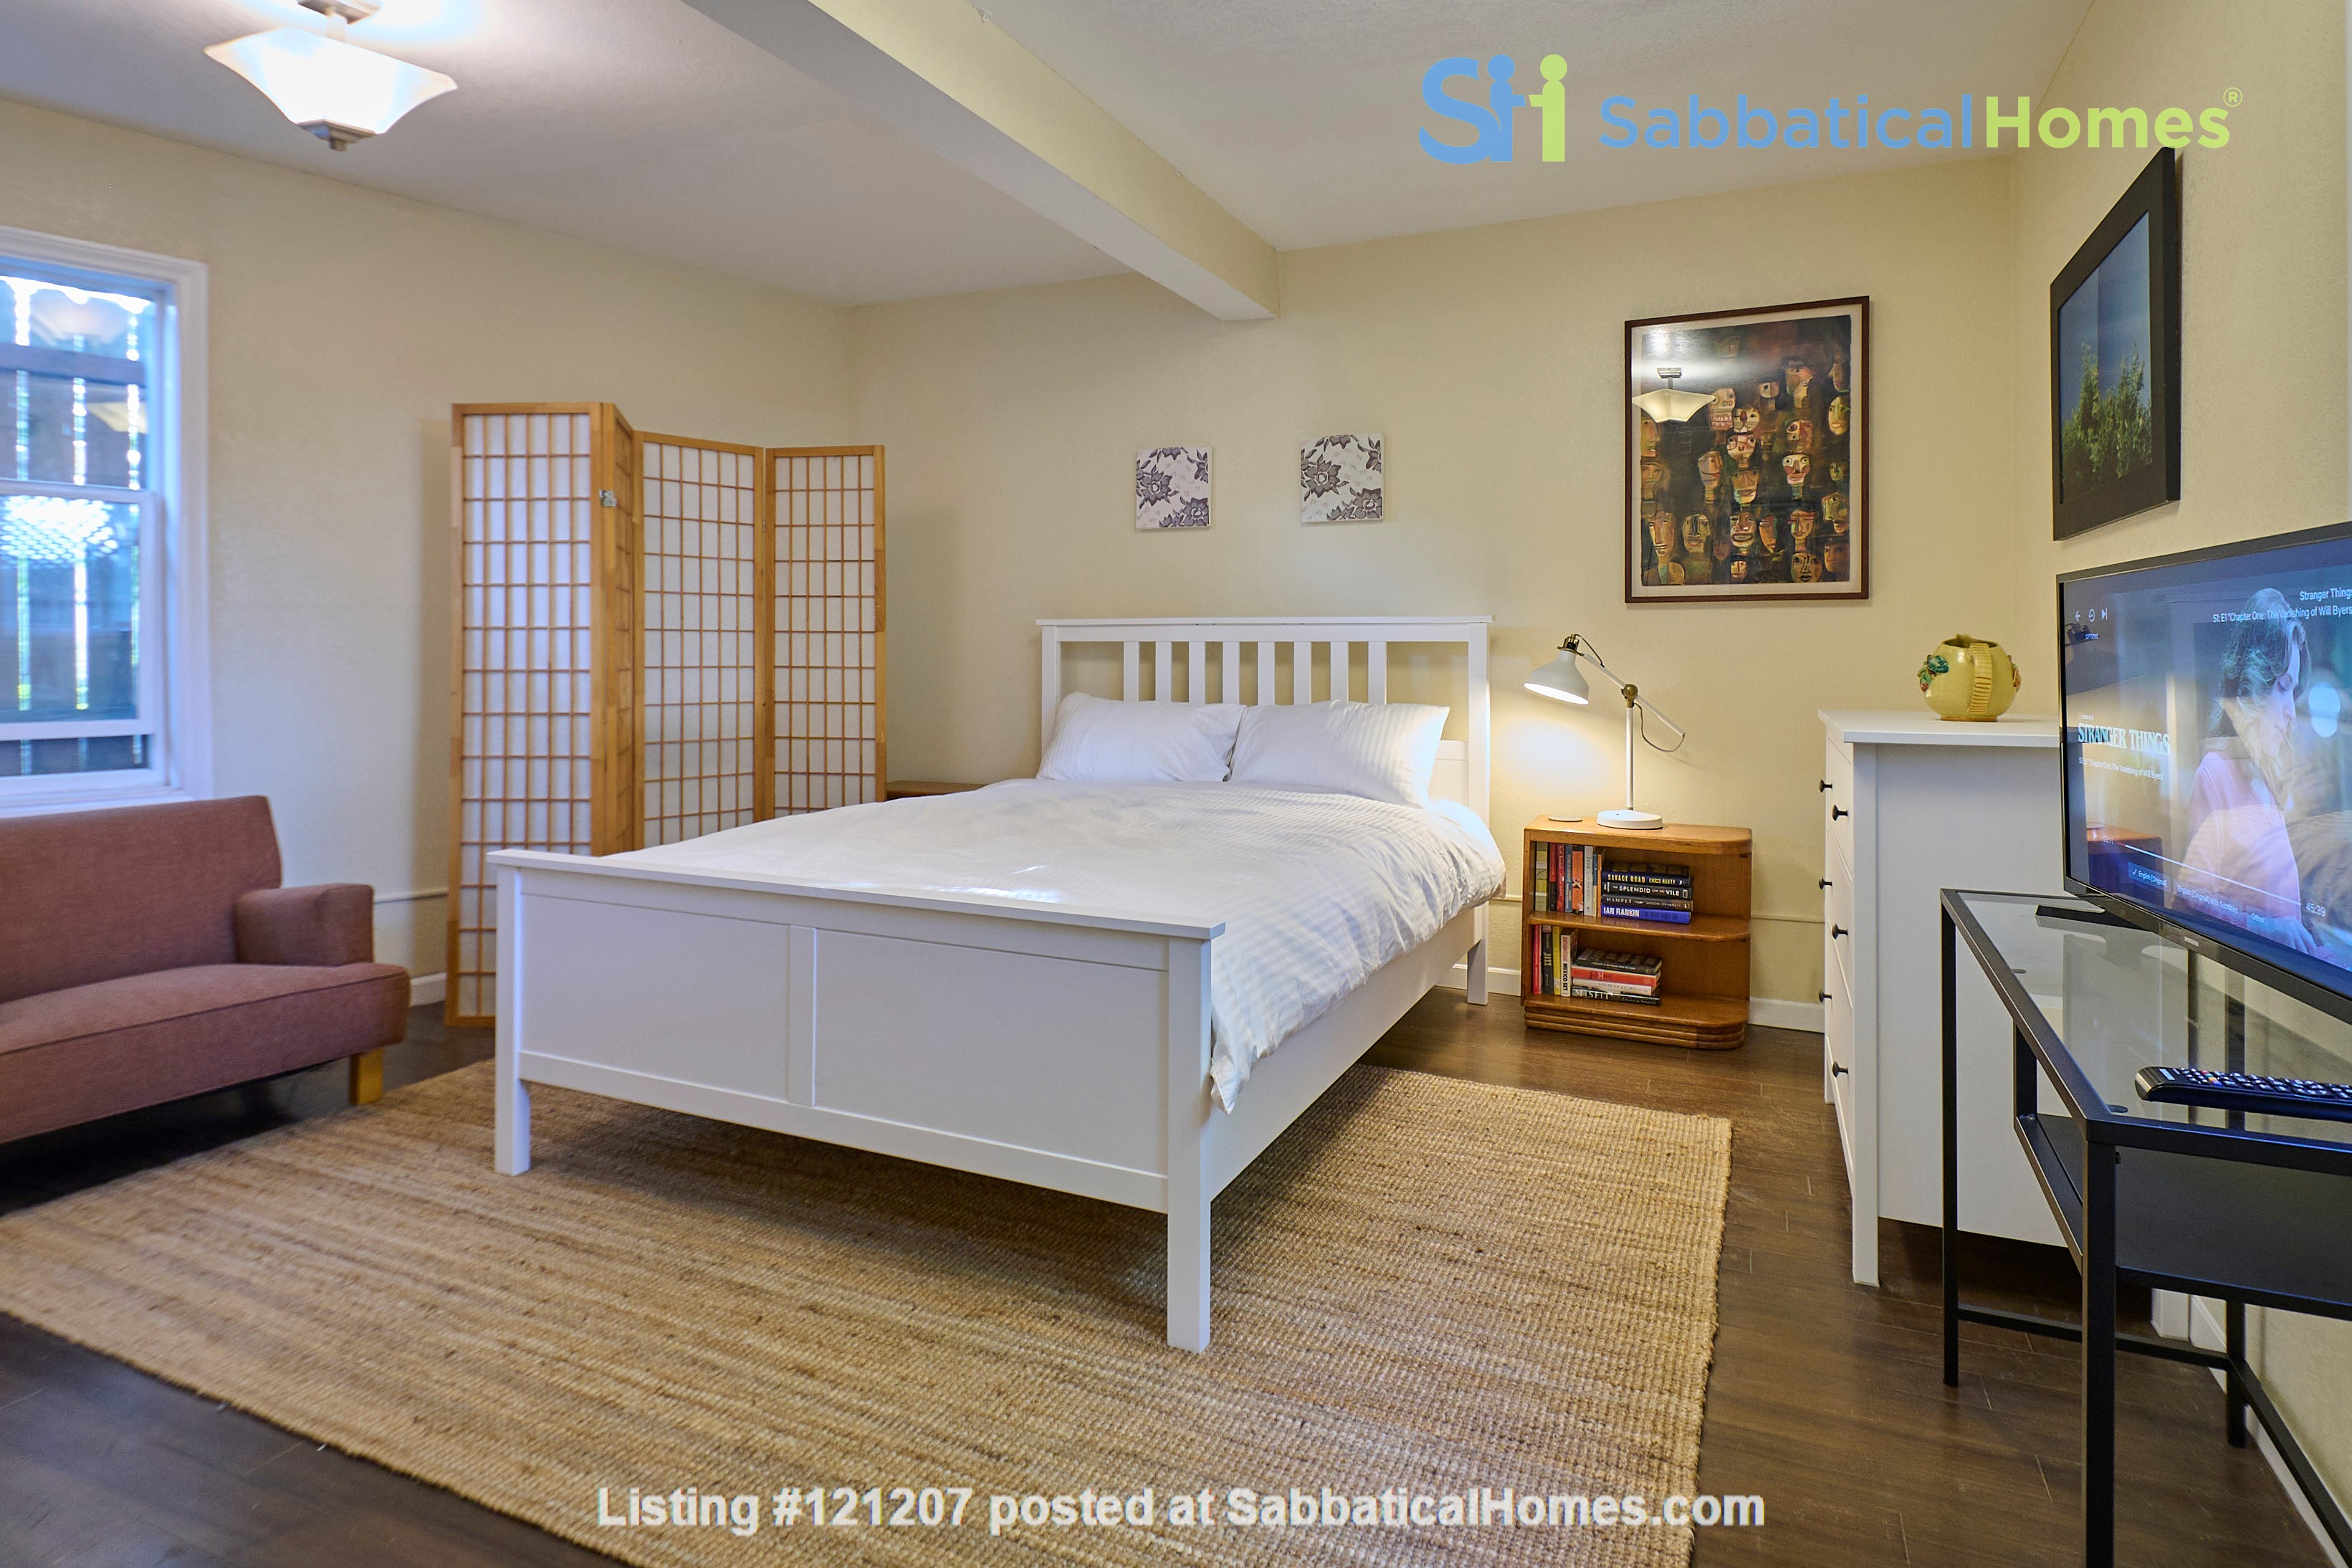 Furnished rooms in South Pasadena hillside home Home Rental in Los Angeles, California, United States 2